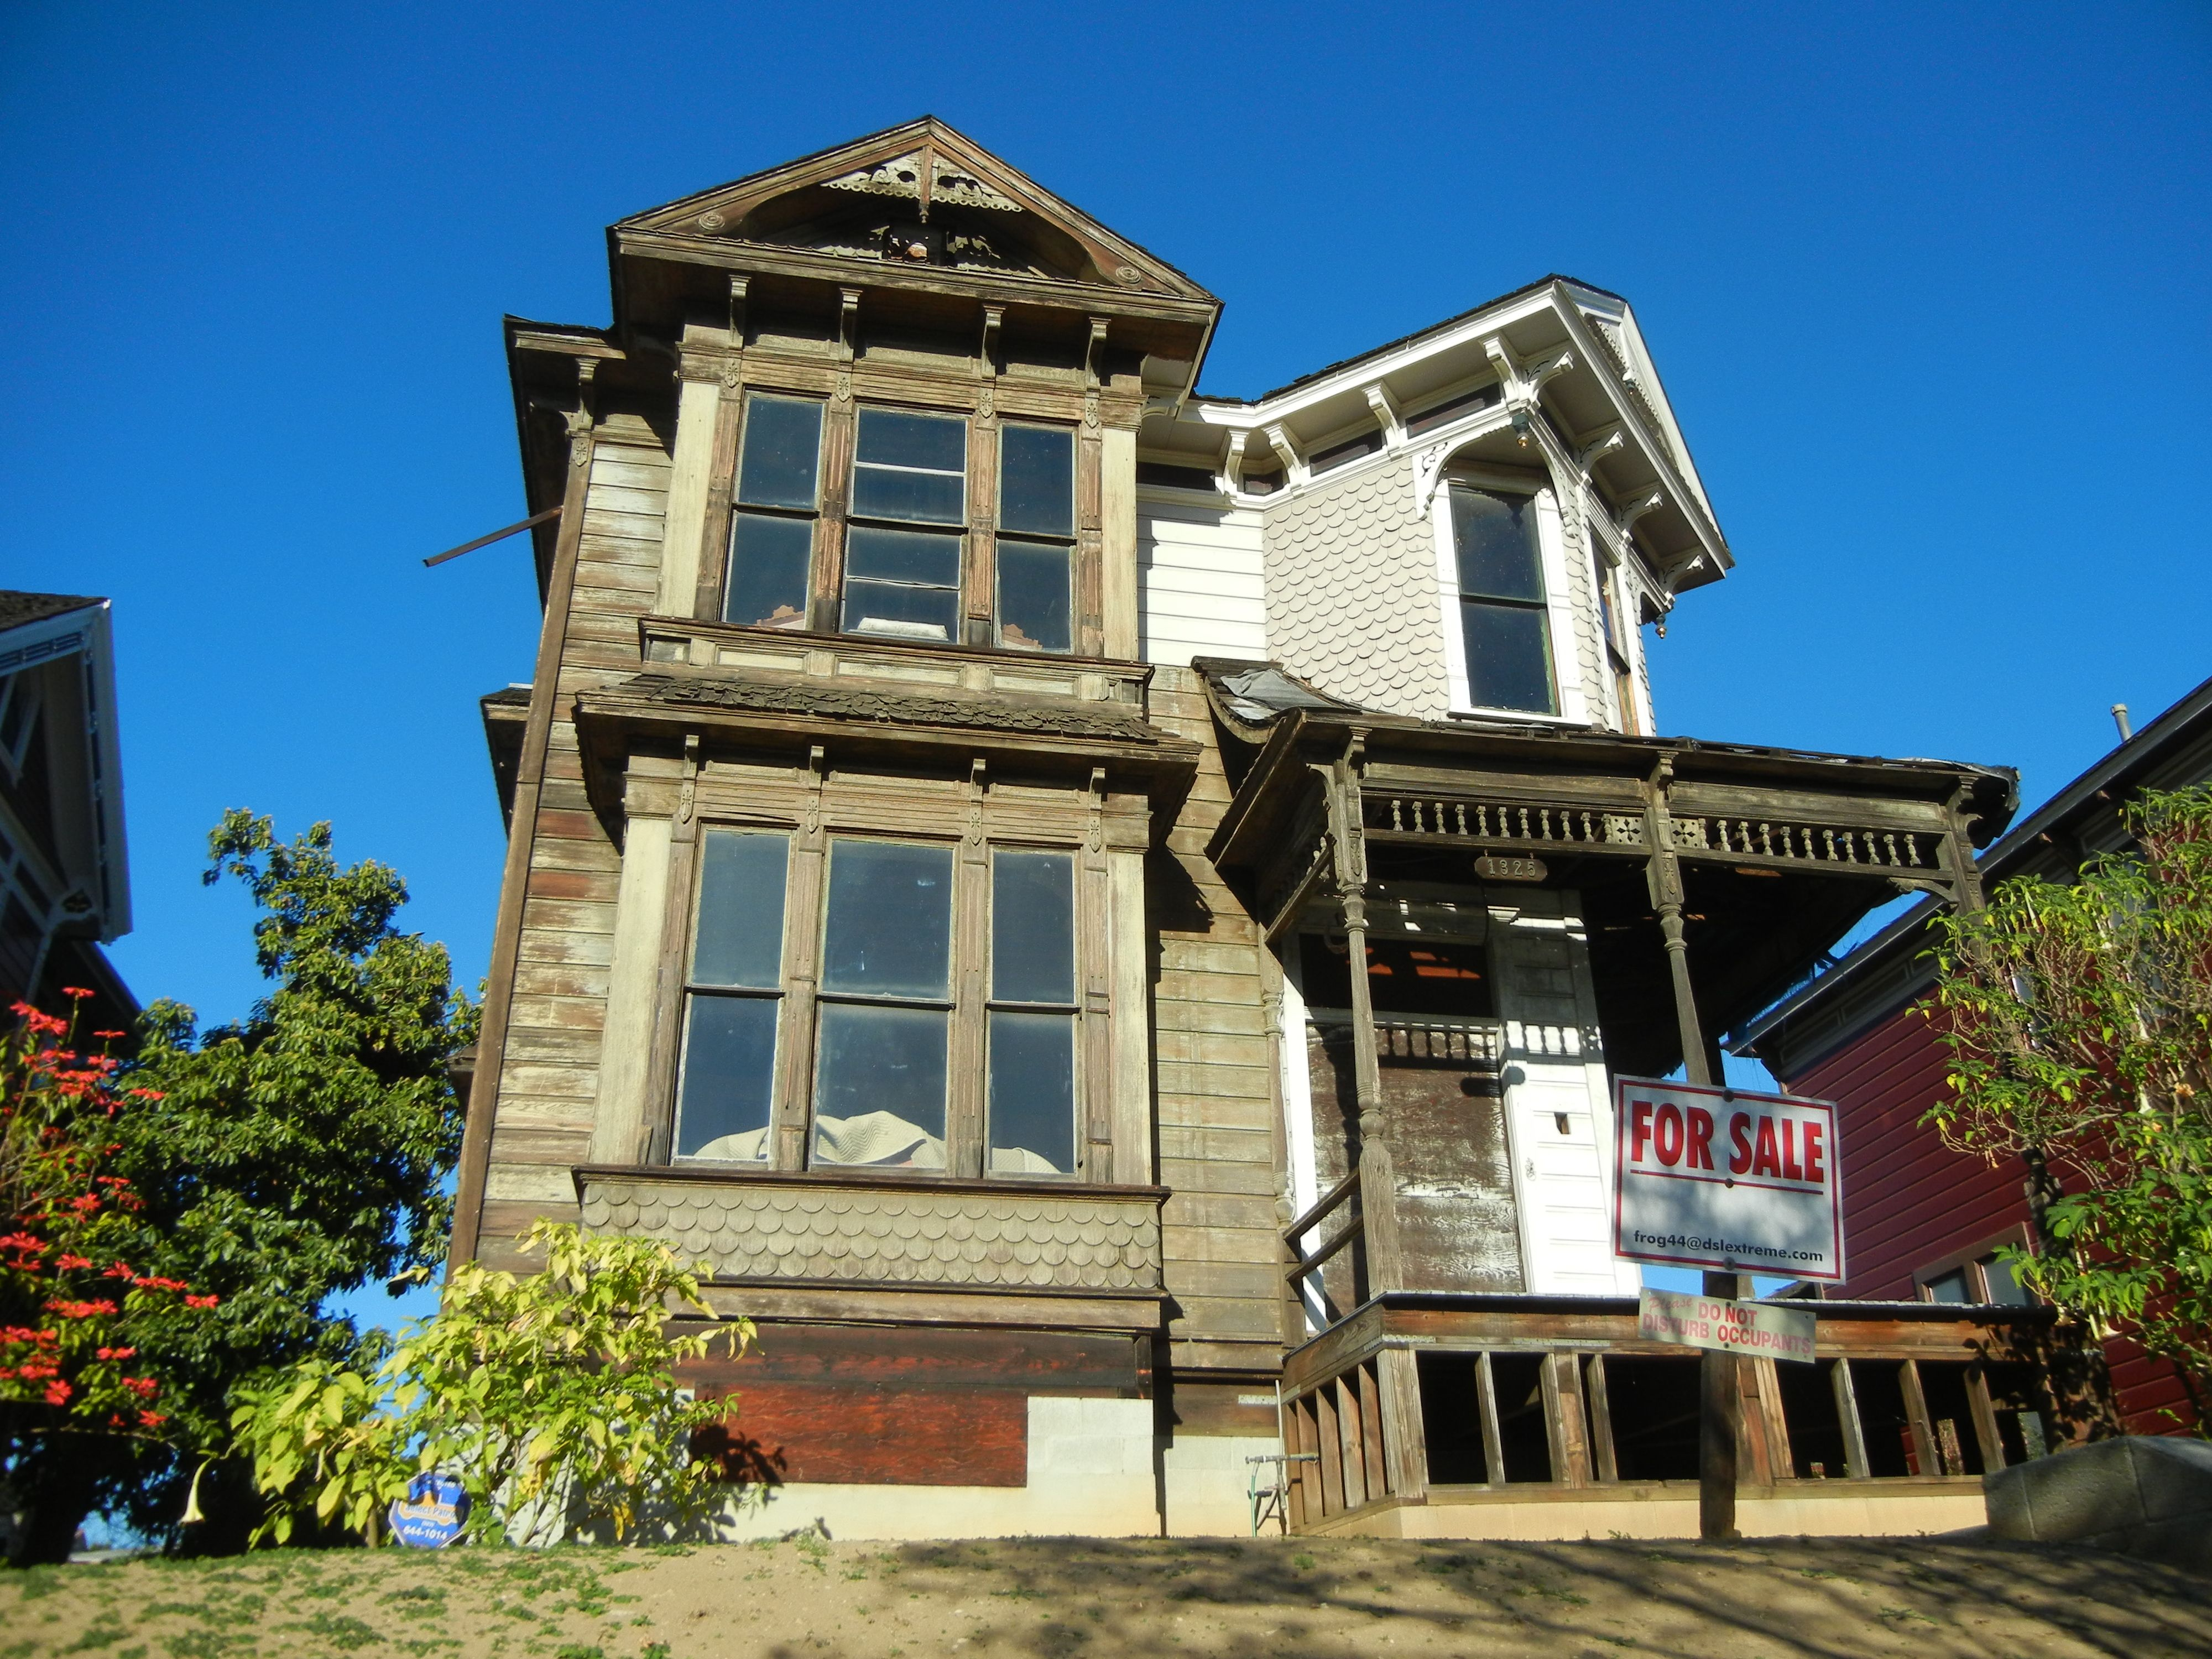 For Sale In The Angelino Heights Section Of Los Angeles Victorian Homes Derelict House Haunted Places